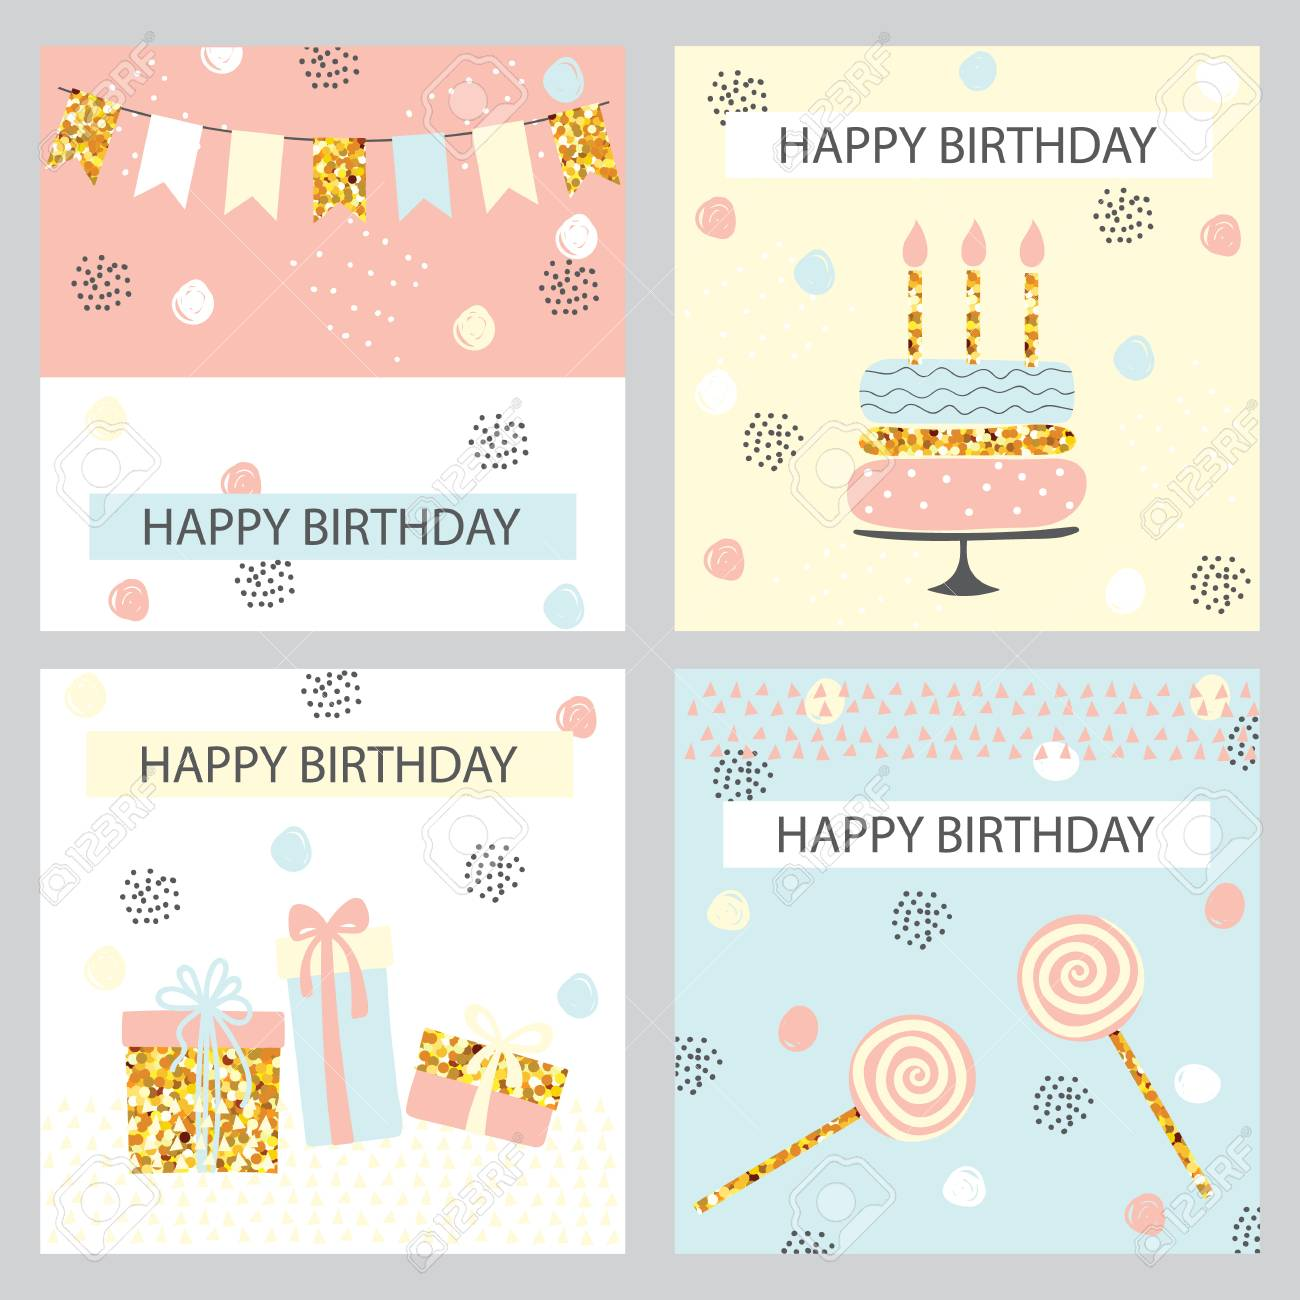 Happy Birthday Card Greeting Cards In Doodle Style Pastel Colors